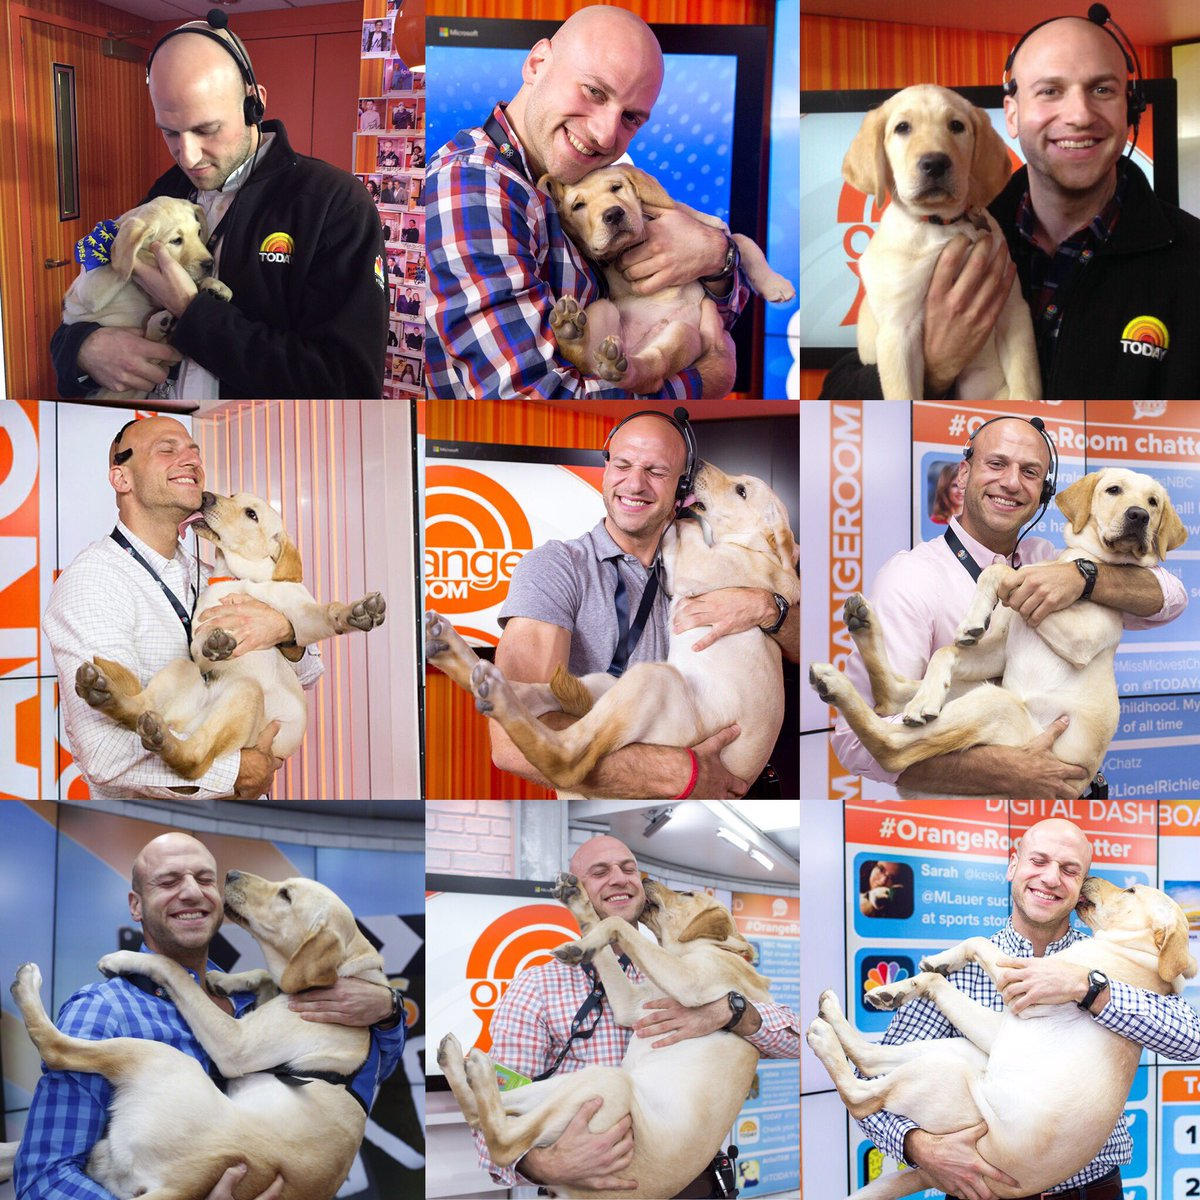 I'll miss you @WranglerTODAY, good luck! @TODAYshow https://t.co/FnxqiIlxmS